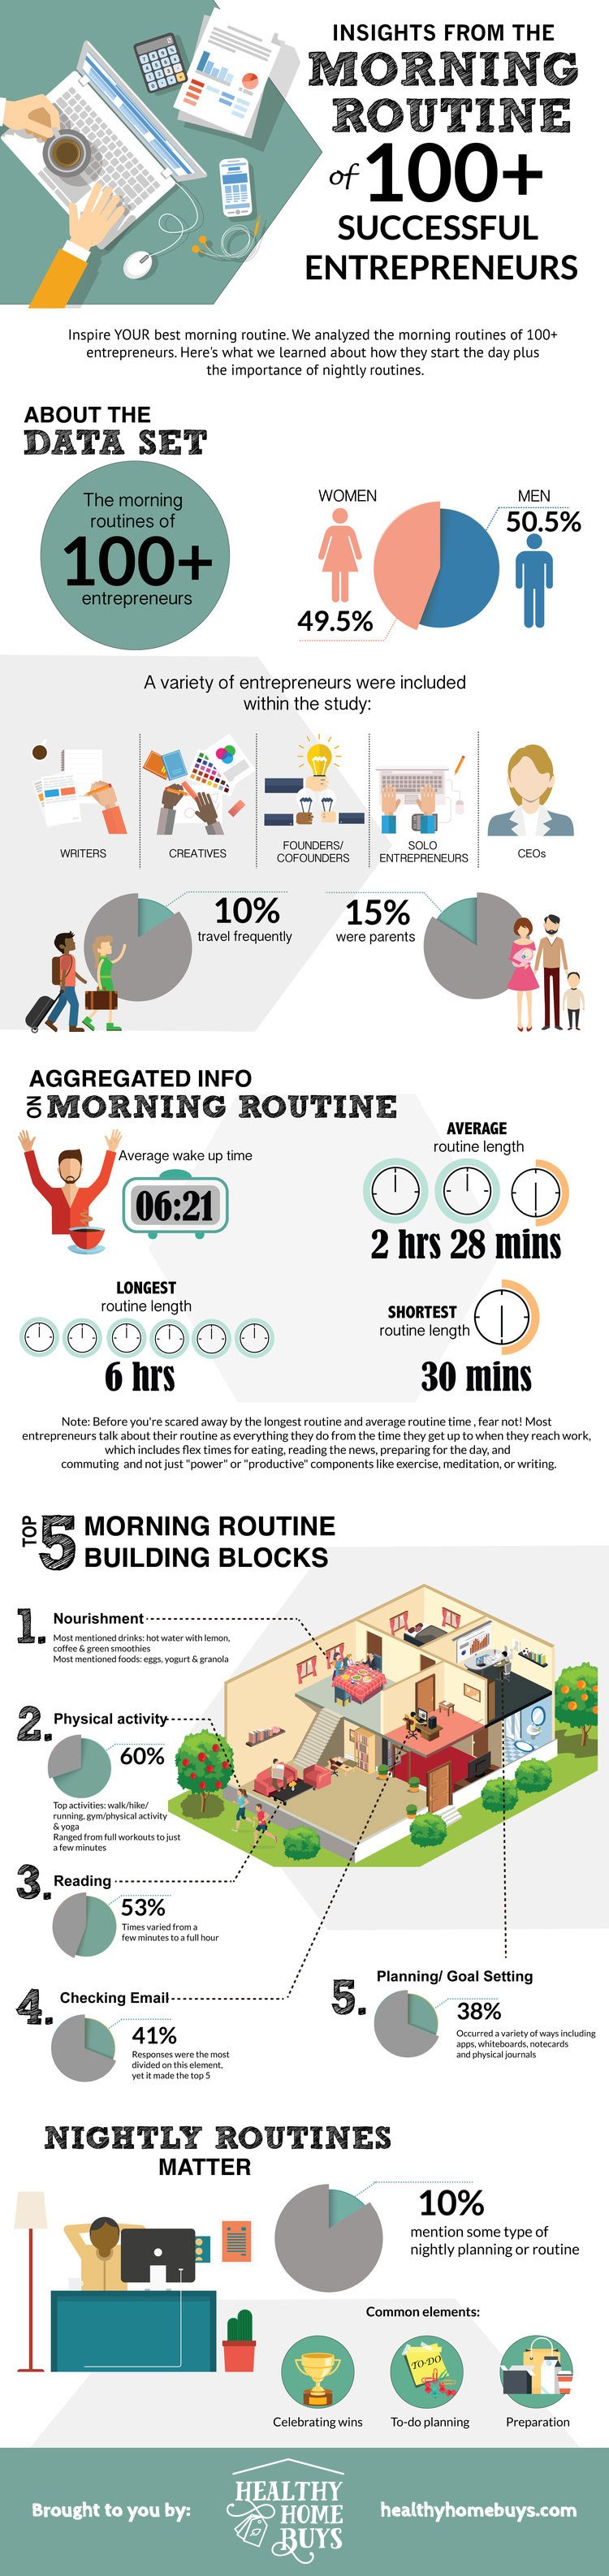 Morning Routine Infographic